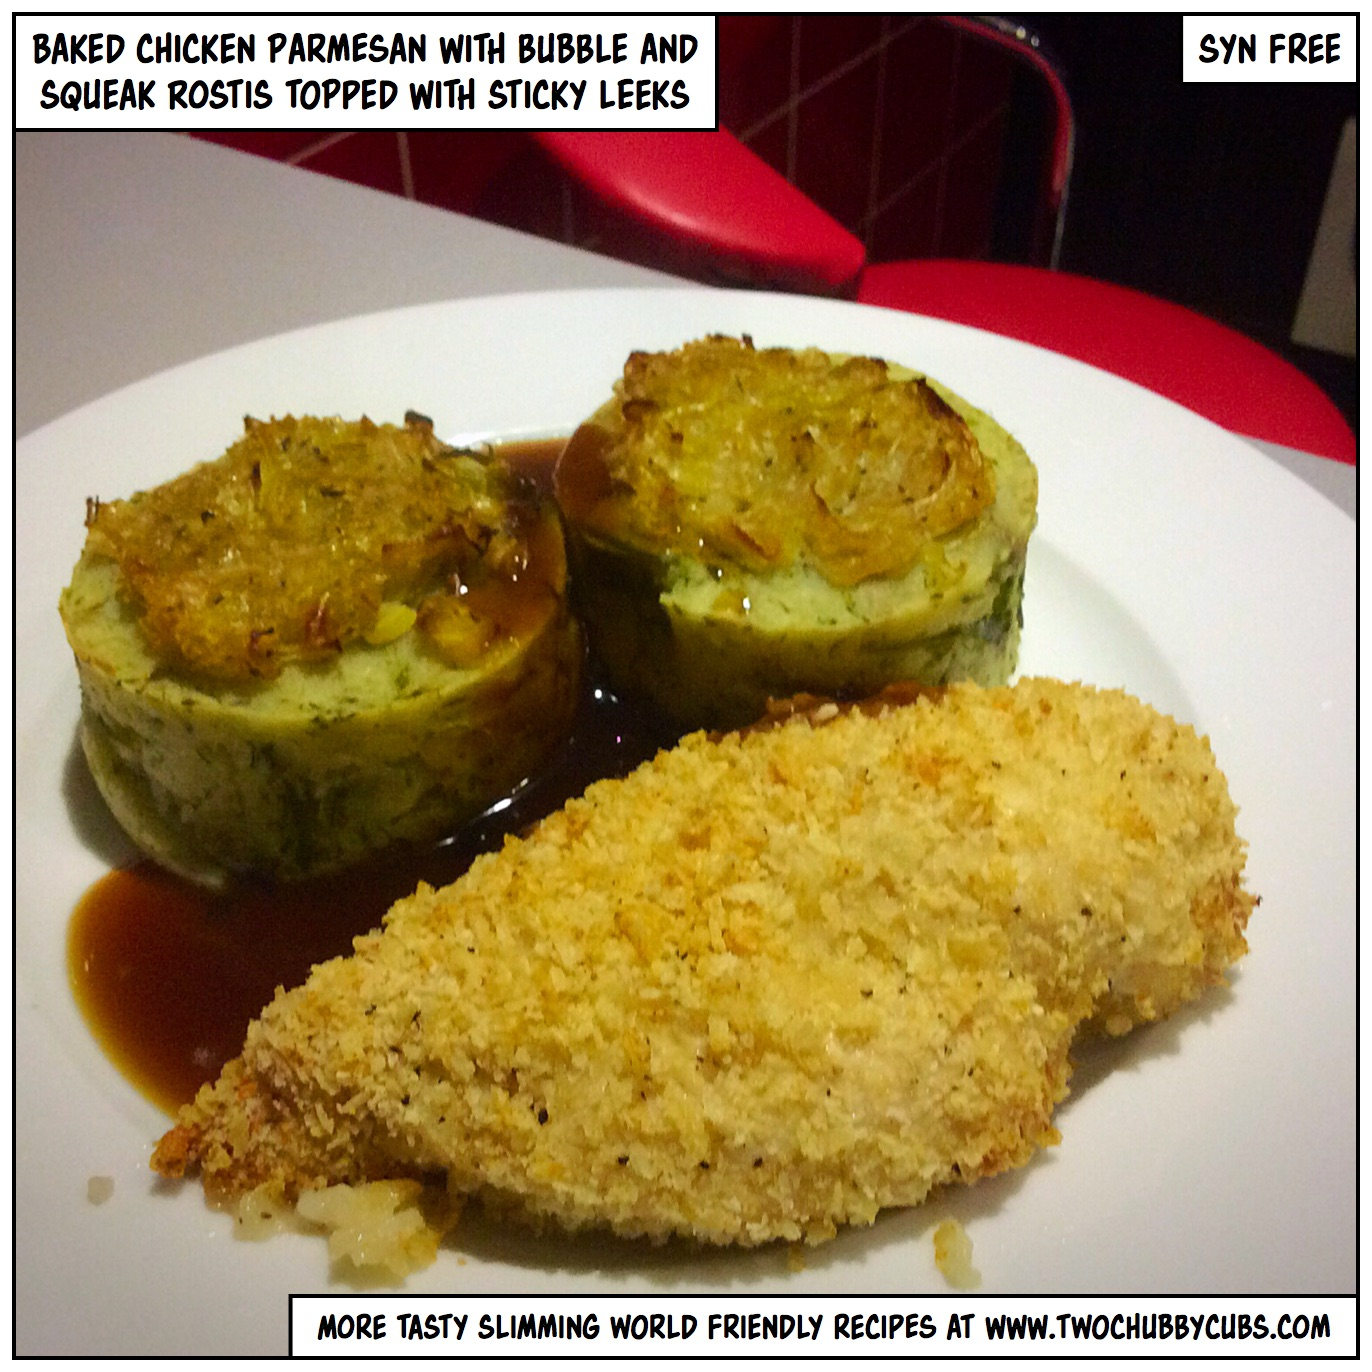 Syn Free Chicken Parmesan